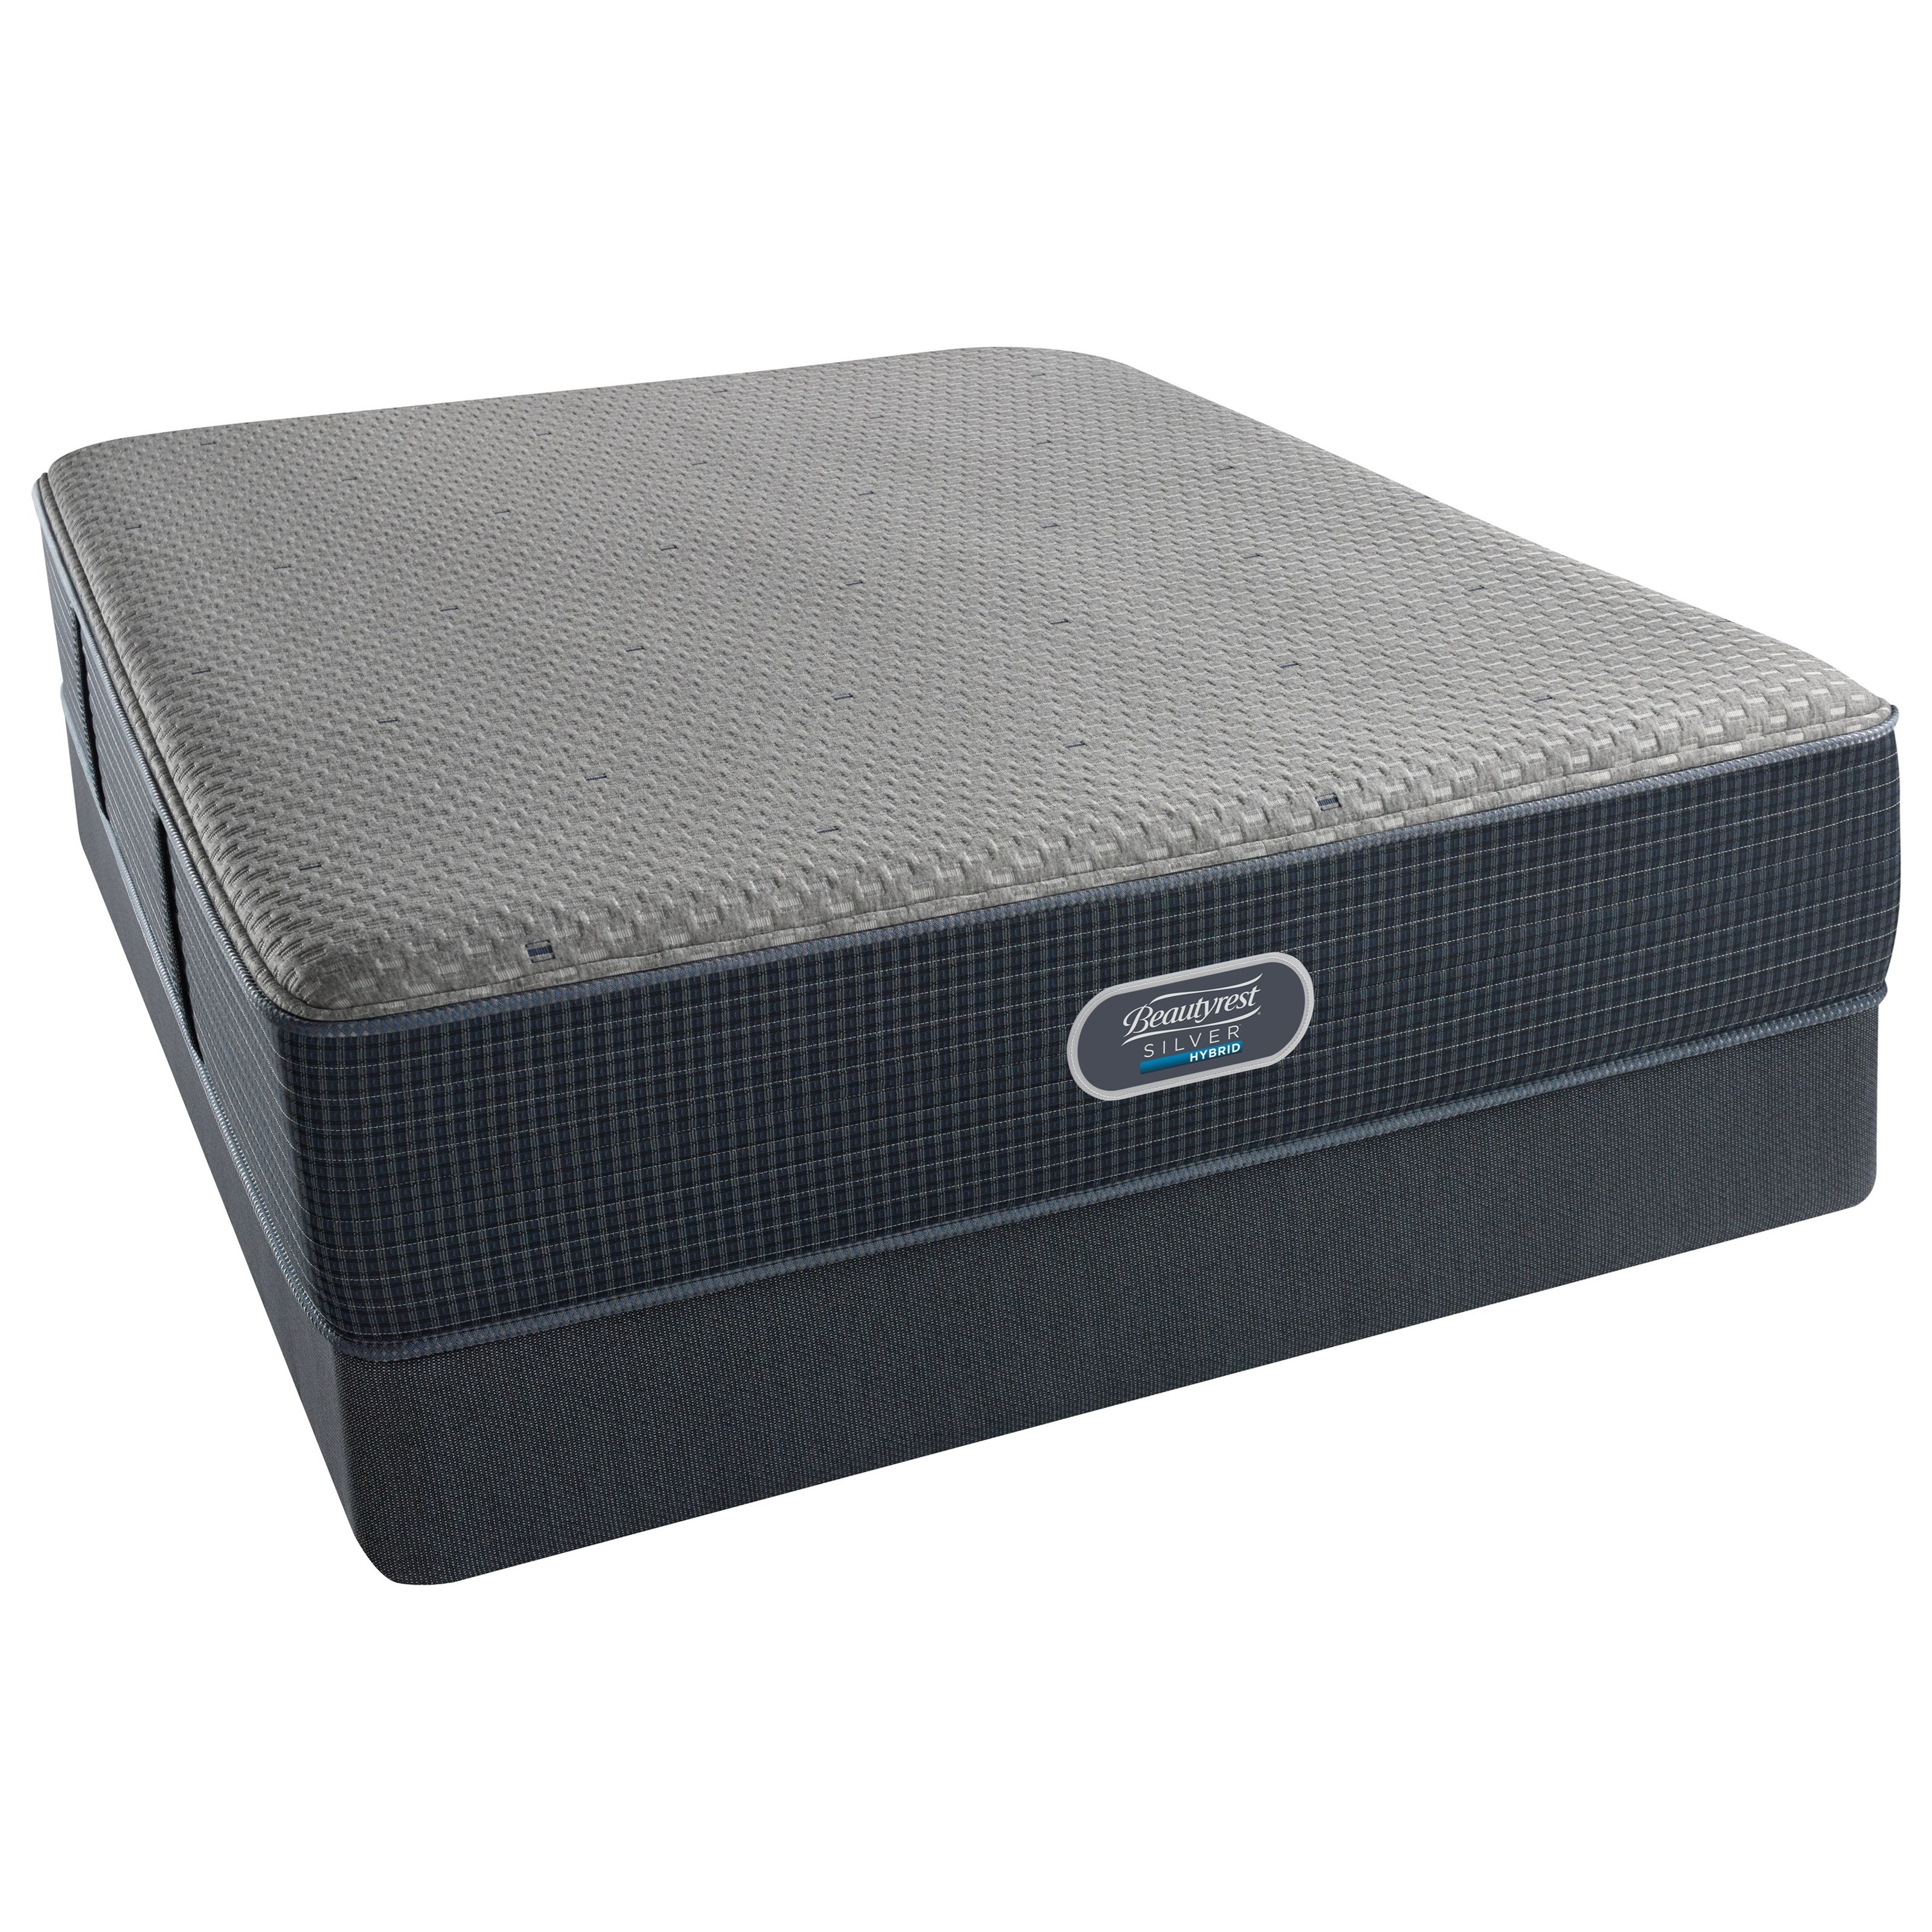 Beautyrest Silver Hybrid Austin Reef Plush Twin Low Profile Set - Item Number: 700601001-1010+700150470-6010